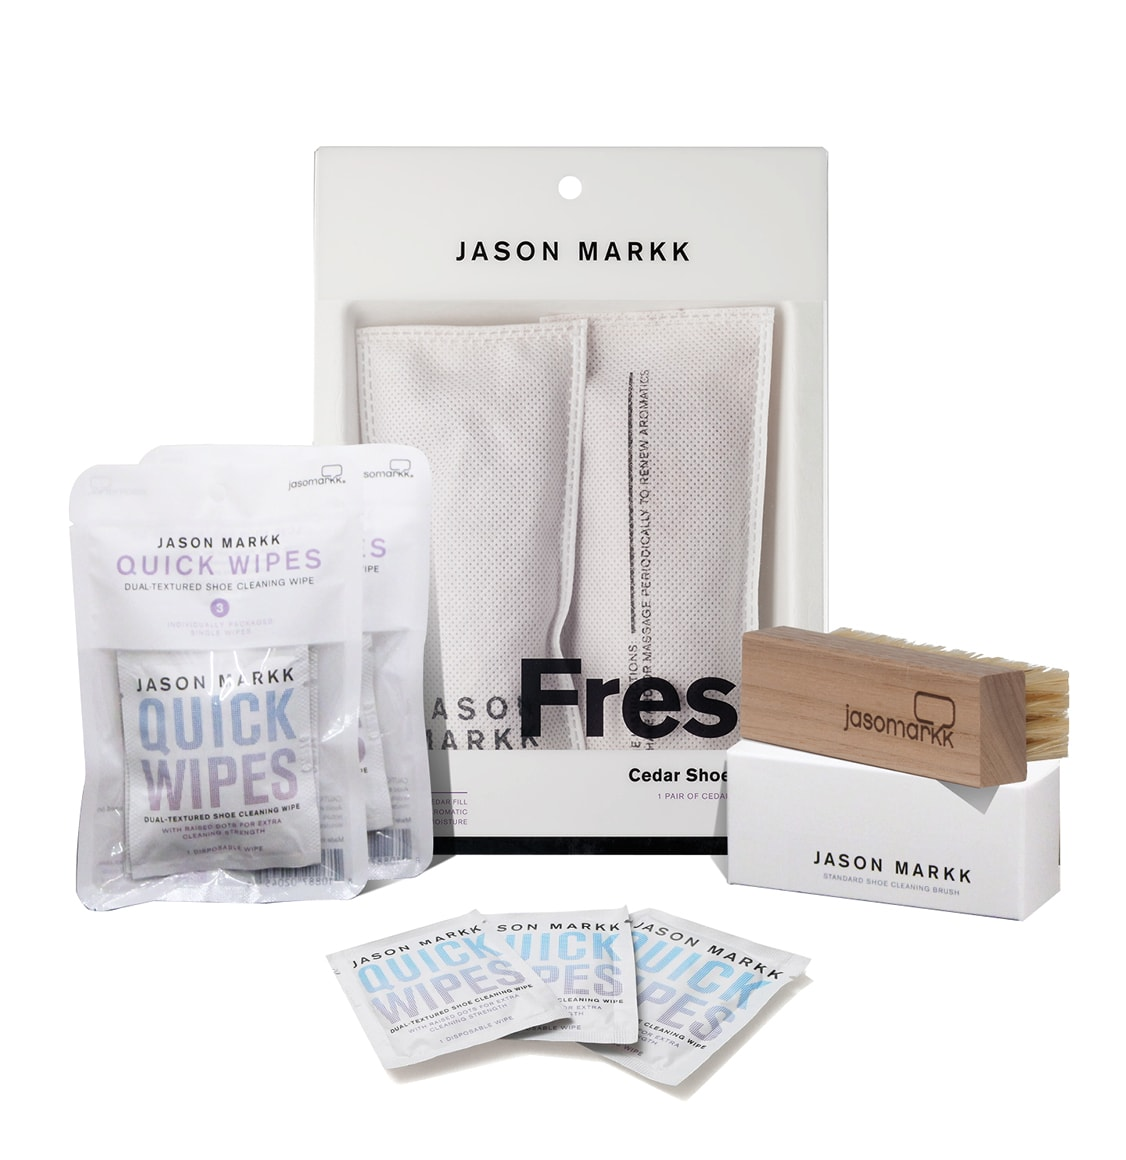 Jason Markk Daily Shoe Care Kit